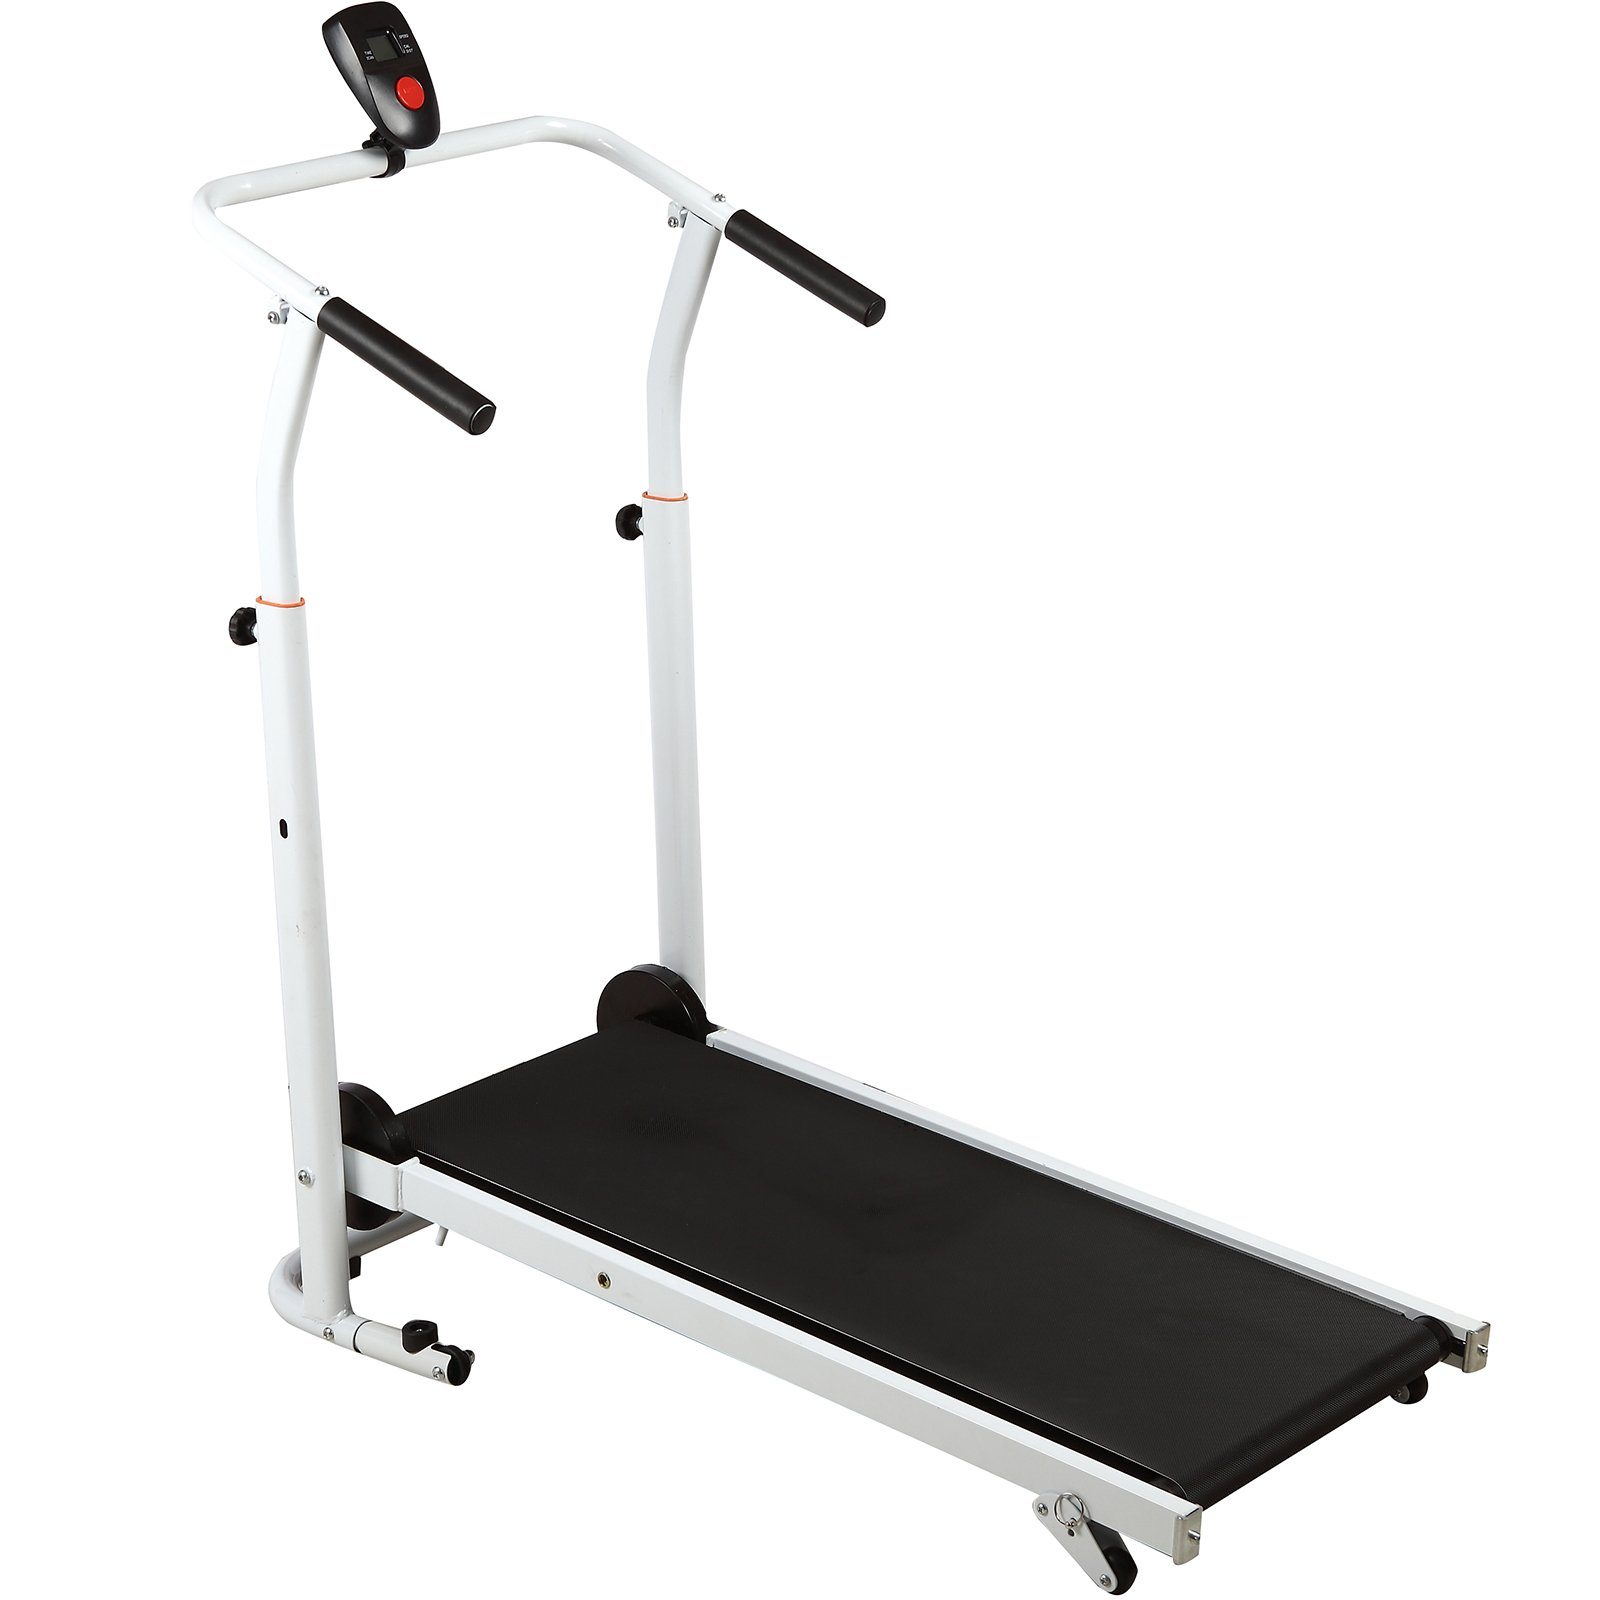 Artist Hand Folding Manual Treadmill Incline Home Gym Maching Cardio Stride Fitness Walking Workouts with Twin Flywheels No Monitor Required by Artist Hand